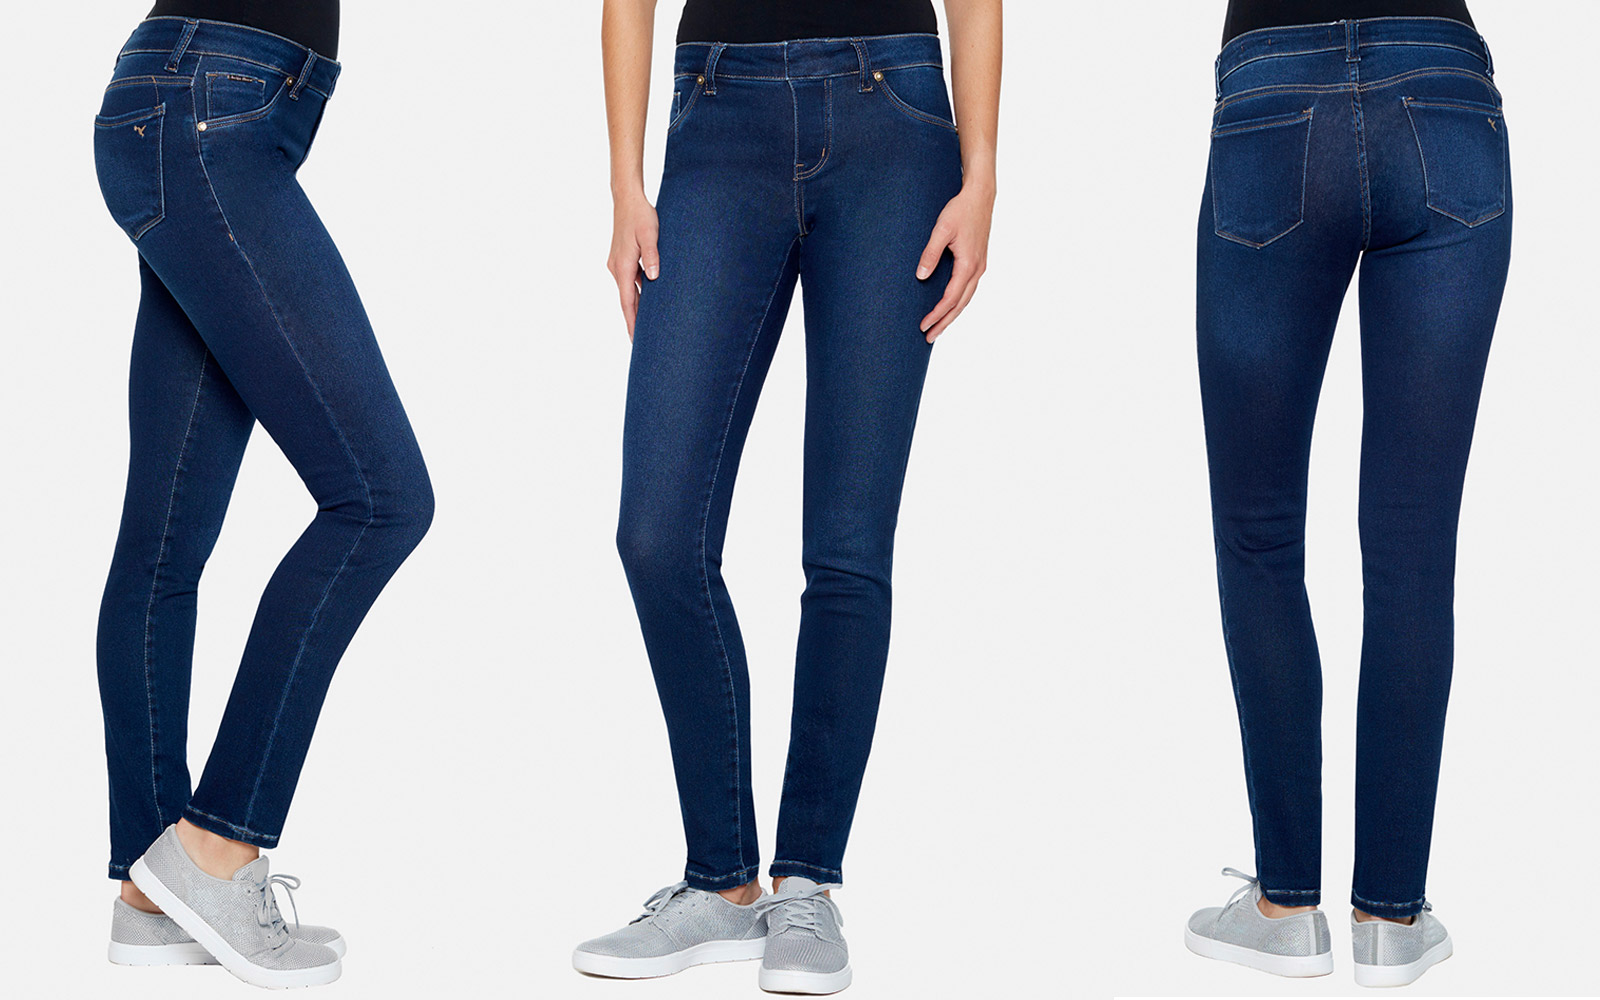 A Physicist Finally Invented Jeans That Don't Hurt When You Eat Too Much